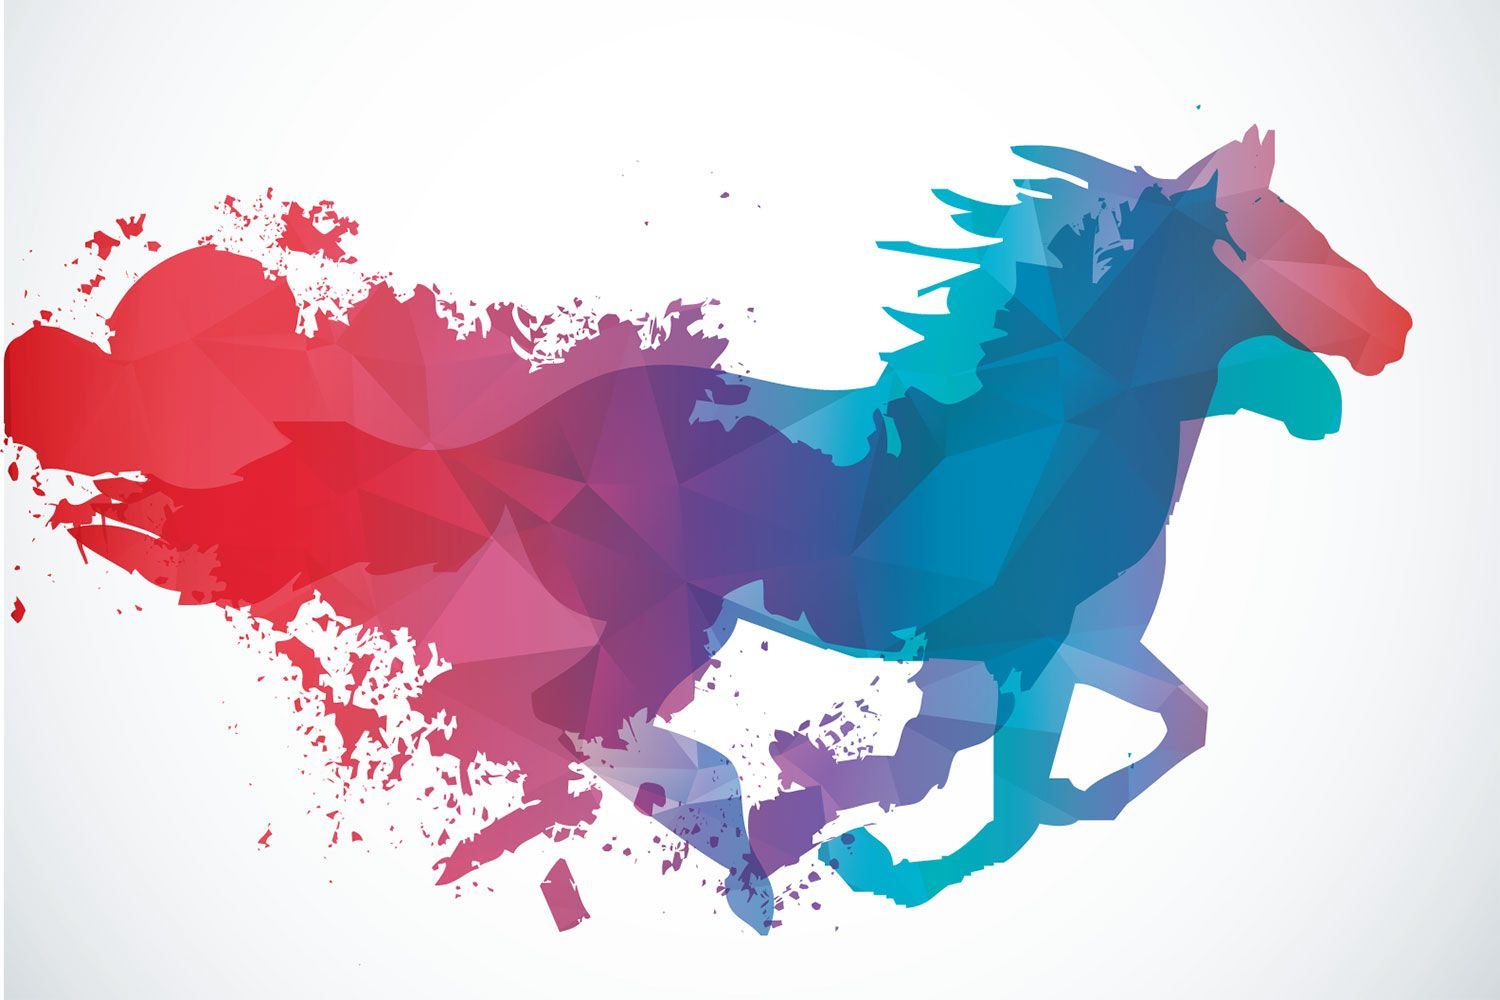 Abstract Horse Wallpapers Top Free Abstract Horse Backgrounds Wallpaperaccess